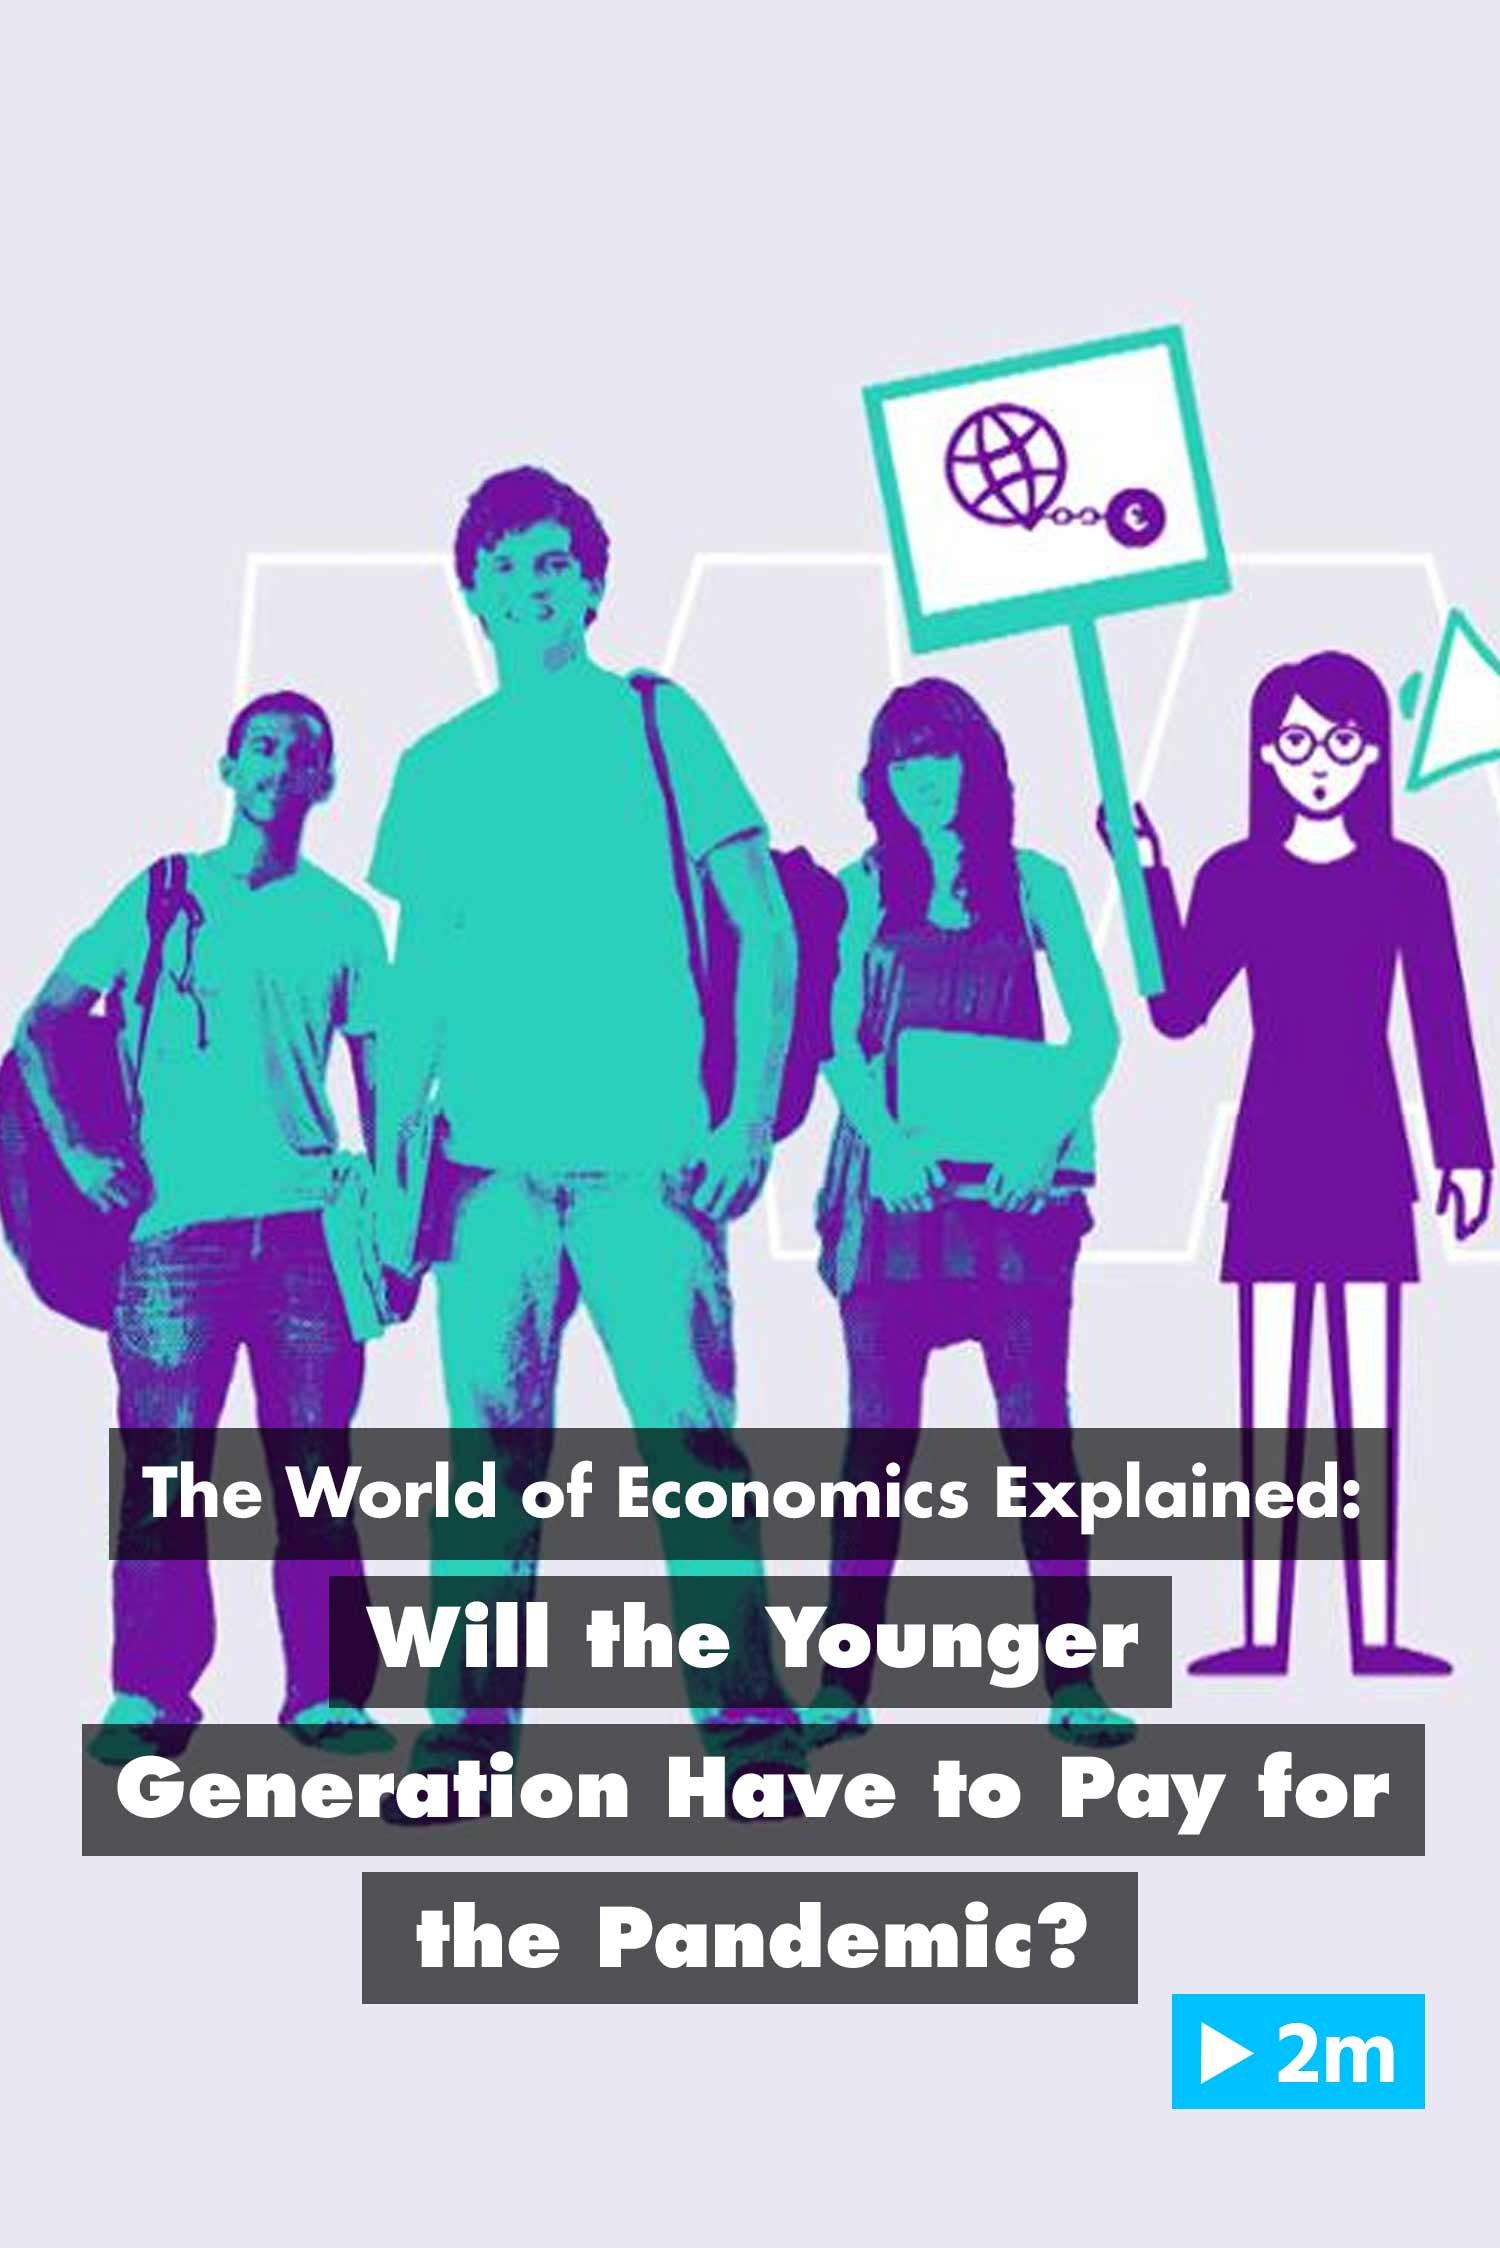 The World of Economics Explained: Will the Younger Generation Have to Pay for the Pandemic?